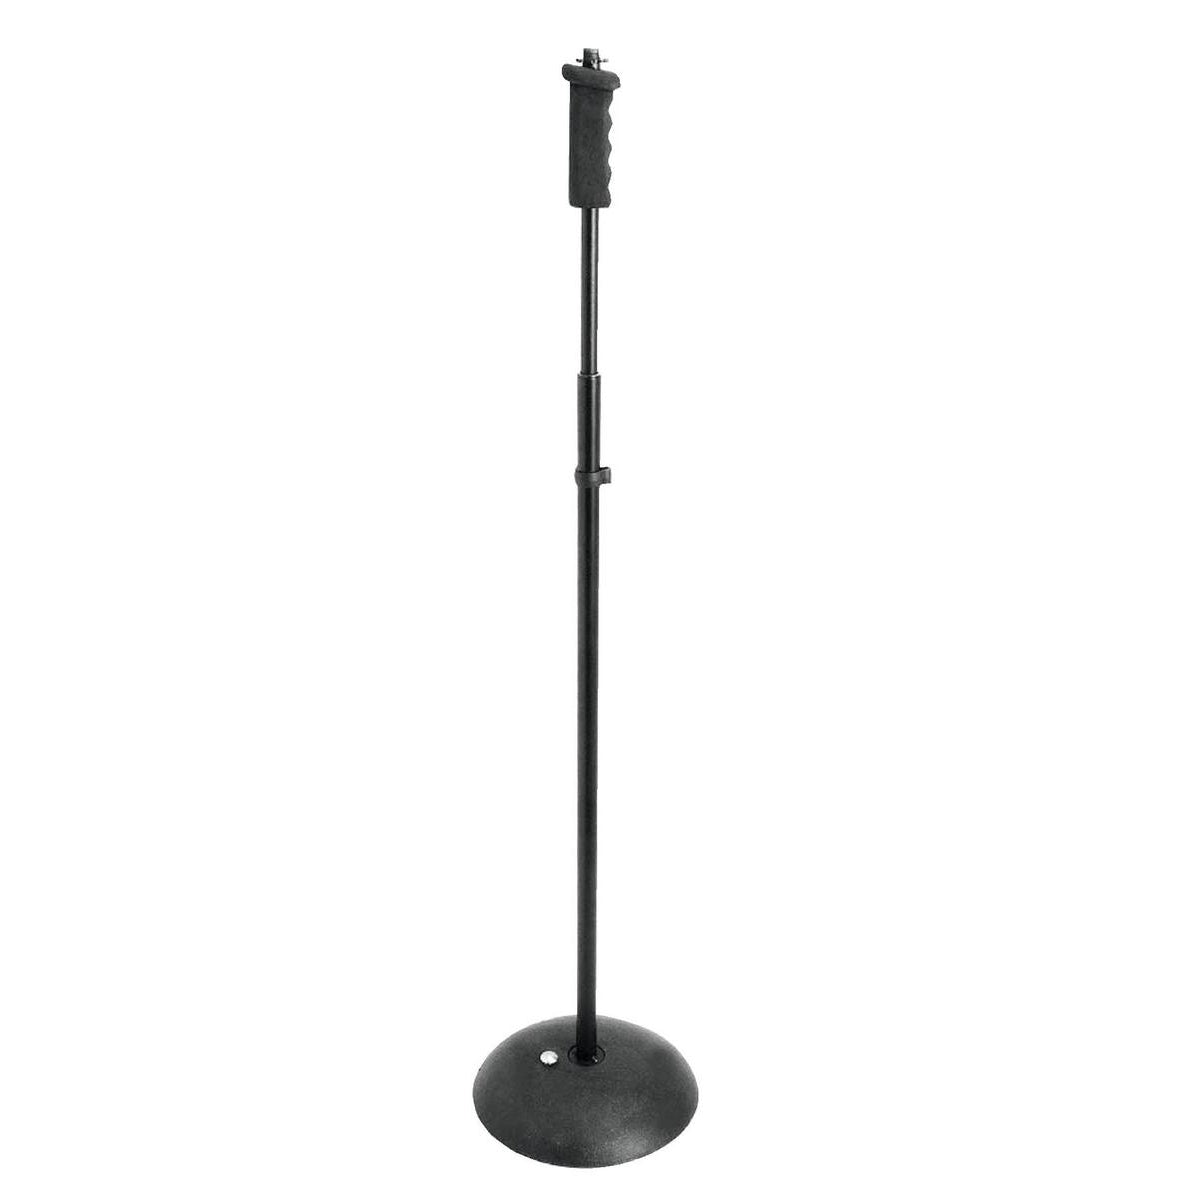 ON STAGE MS7255PG ProGrip Dome Base Mic Stand